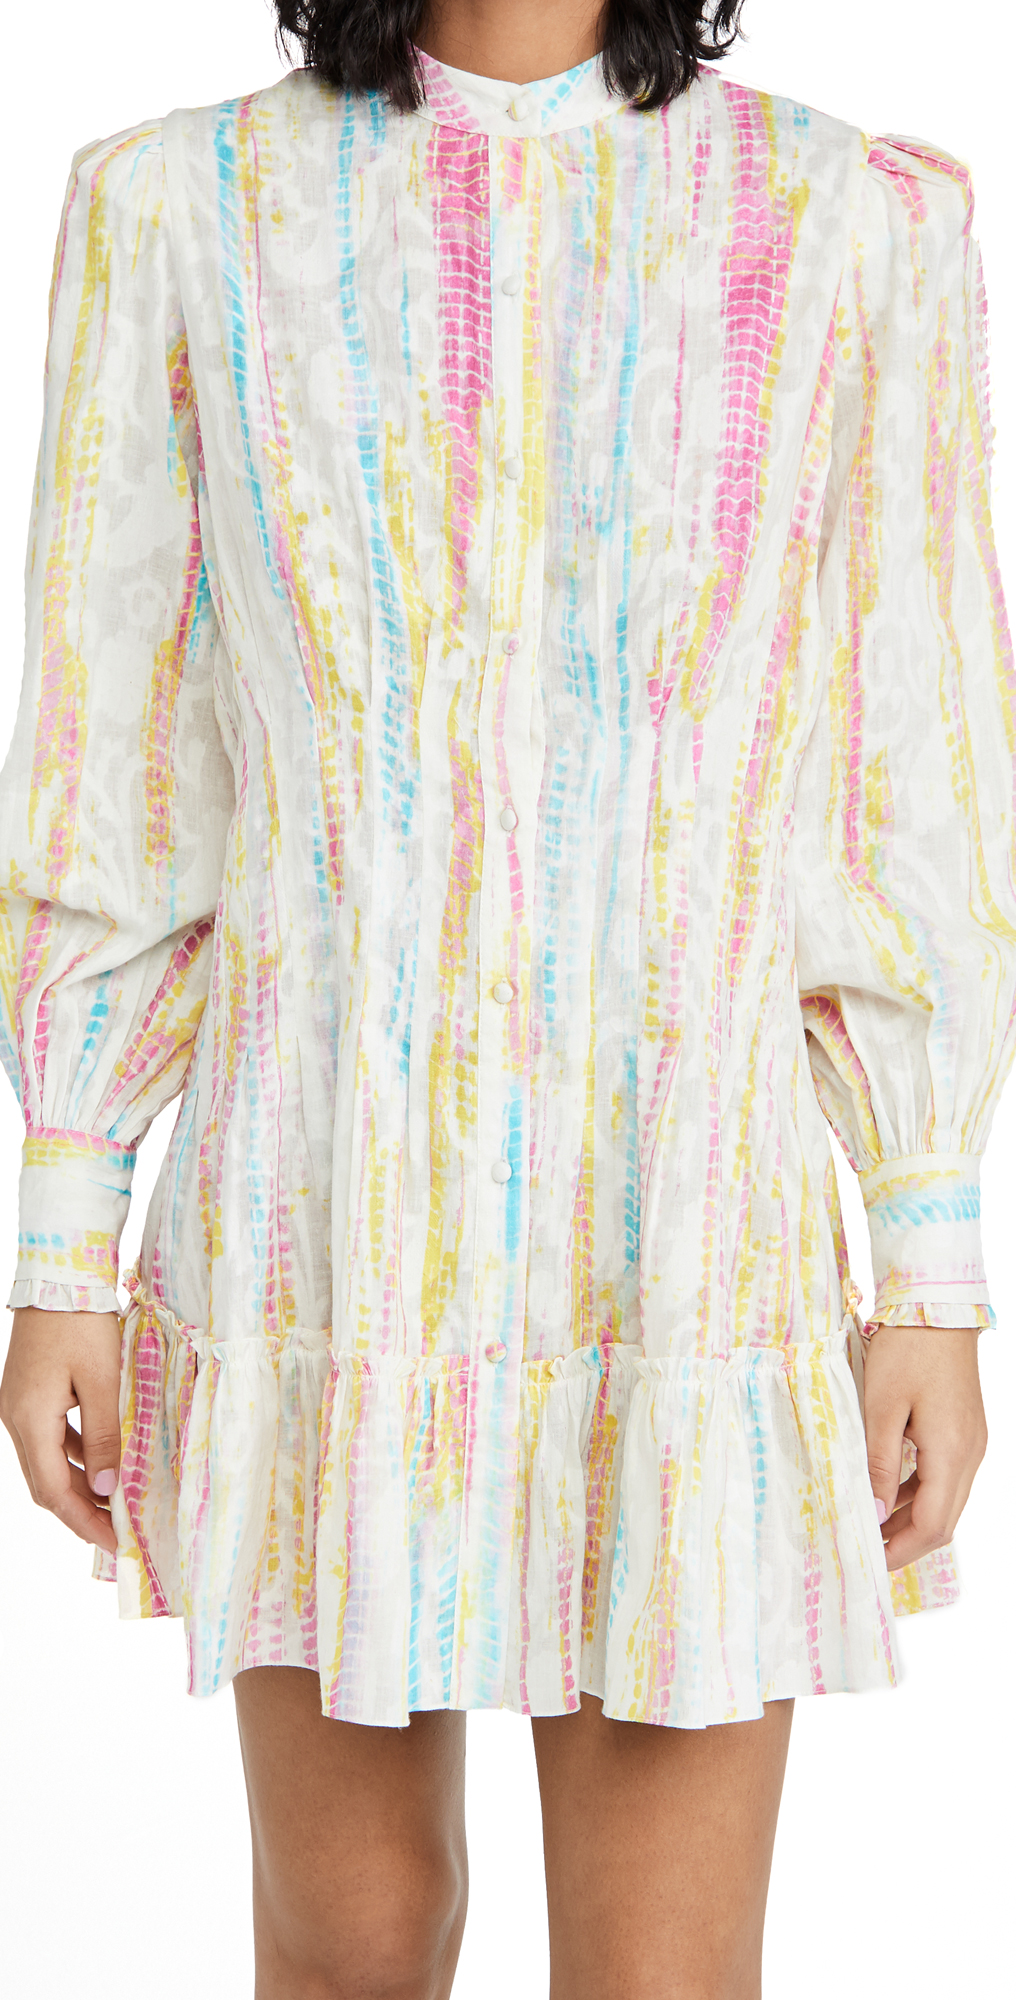 Hemant and Nandita Cover Up Shirtdress